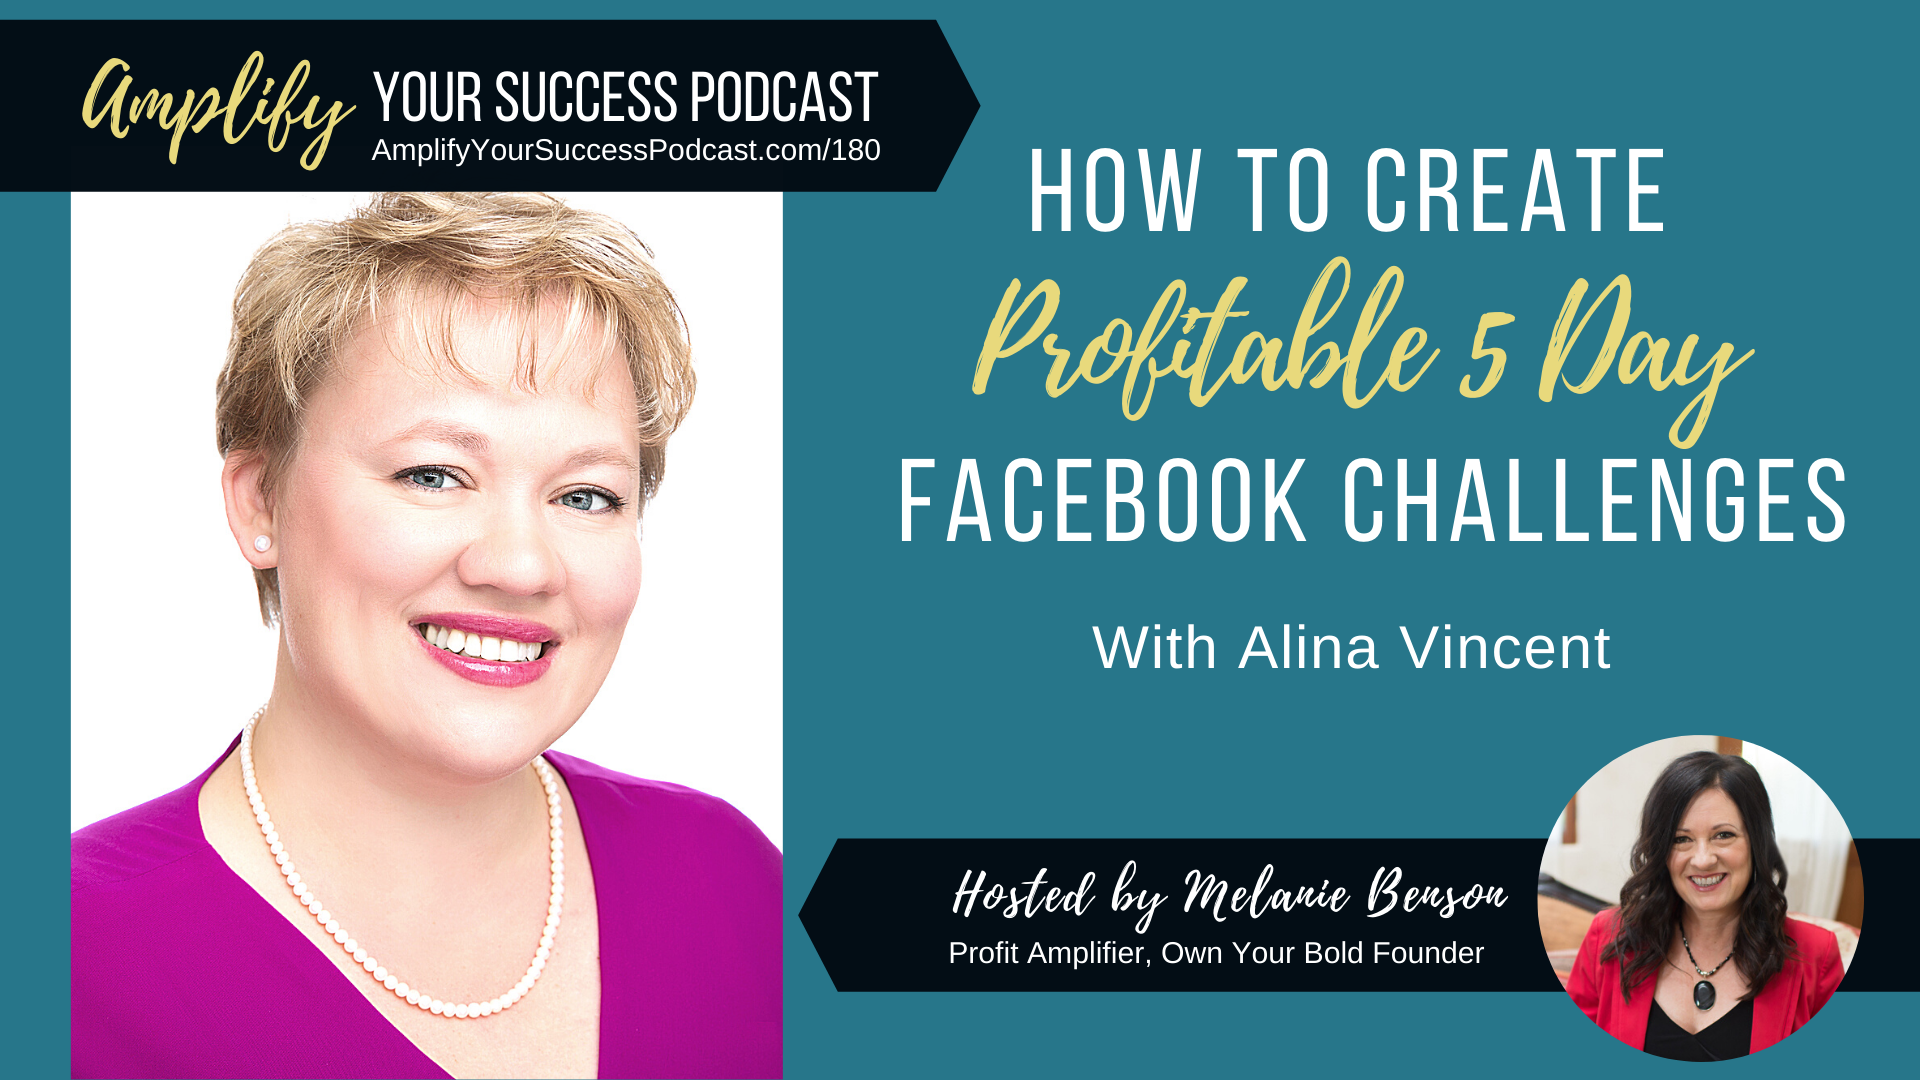 How to Create Profitable 5 Day Challenges on Facebook with Alina Vincent on Amplify Your Success Podcast Episode 180 with Melanie Benson